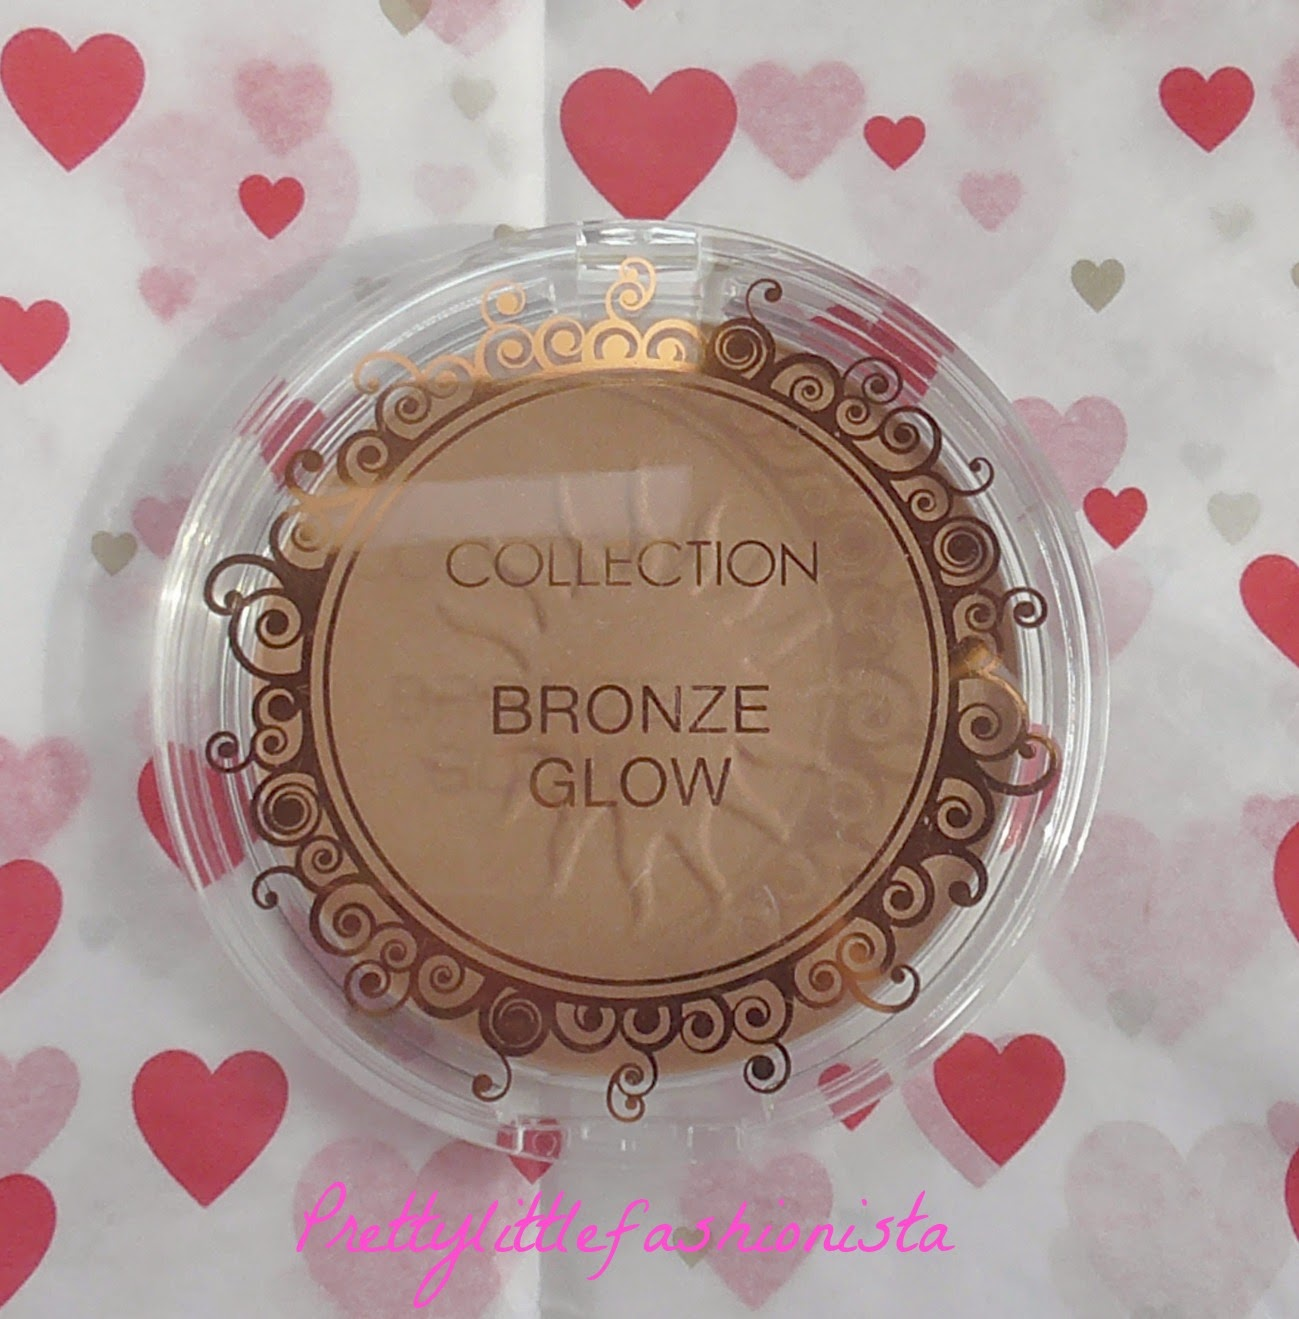 Collection Bronze Glow in Sunkissed